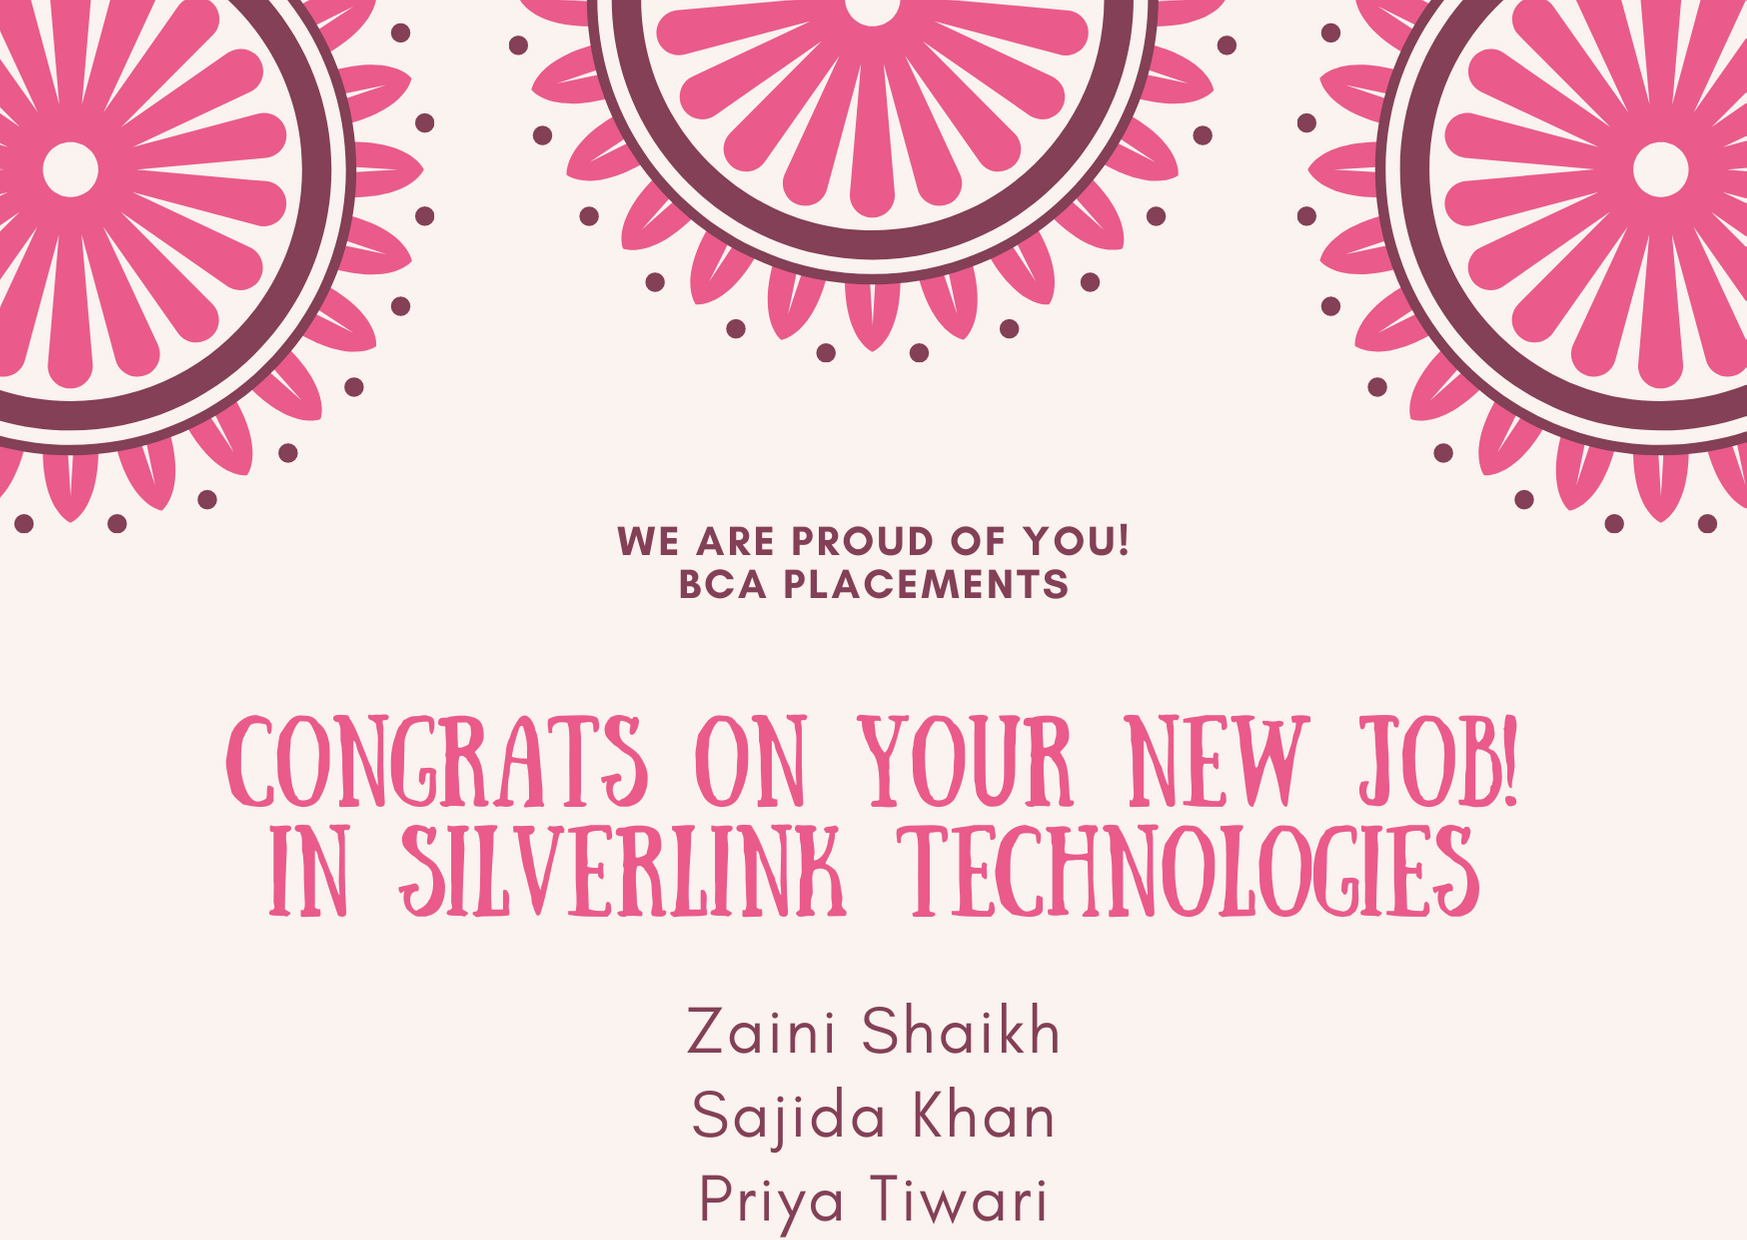 Congratulations to students for their new job in Silverlink Technologies